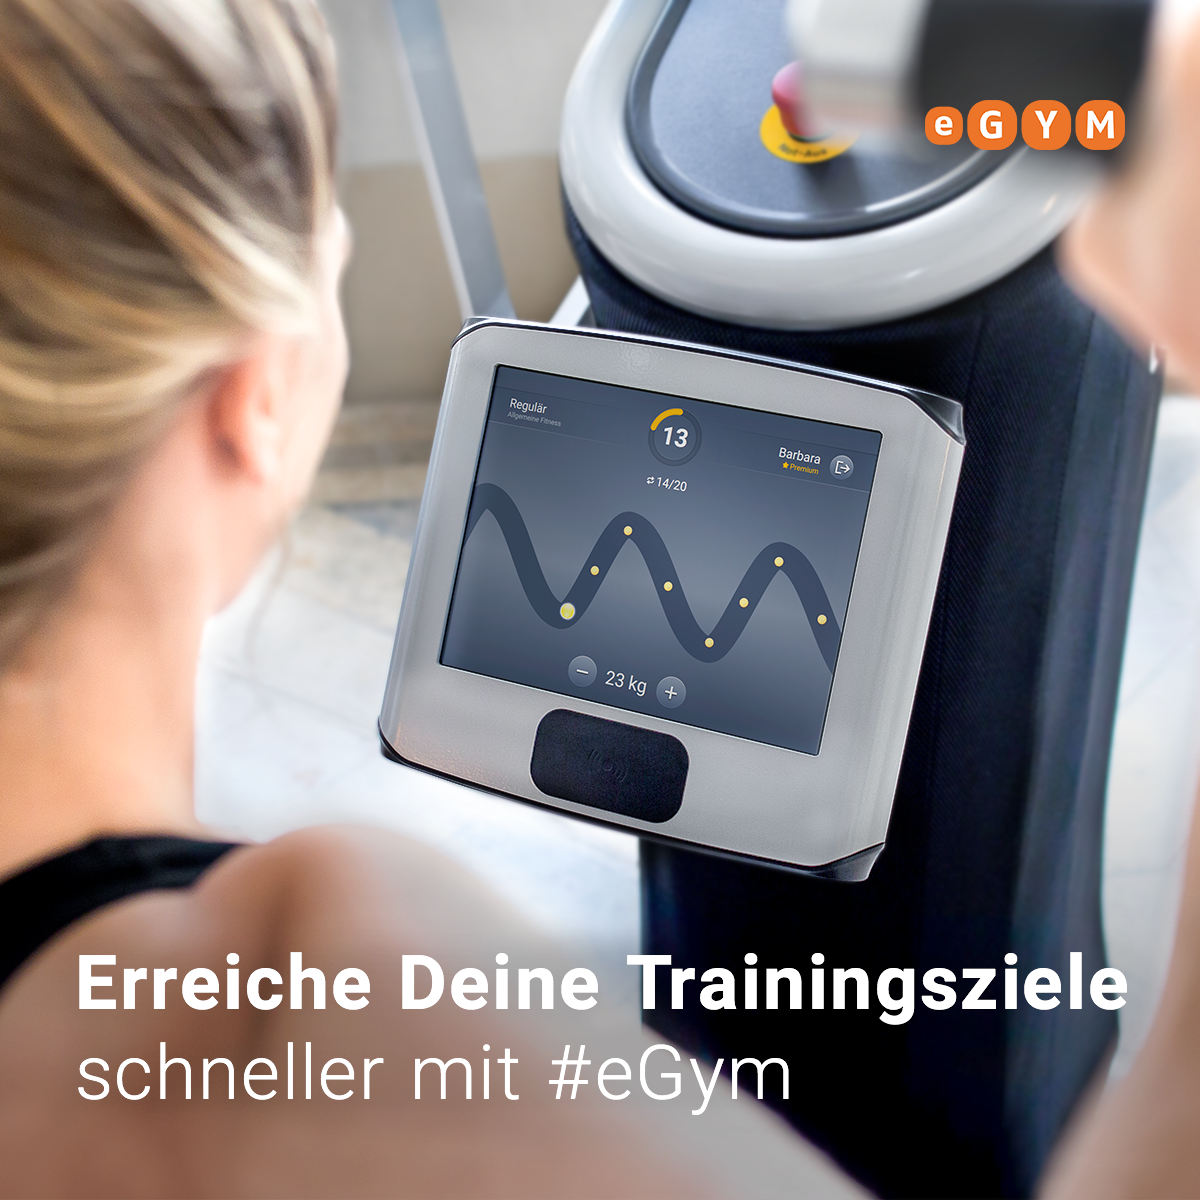 optimale Trainings-bedingungen